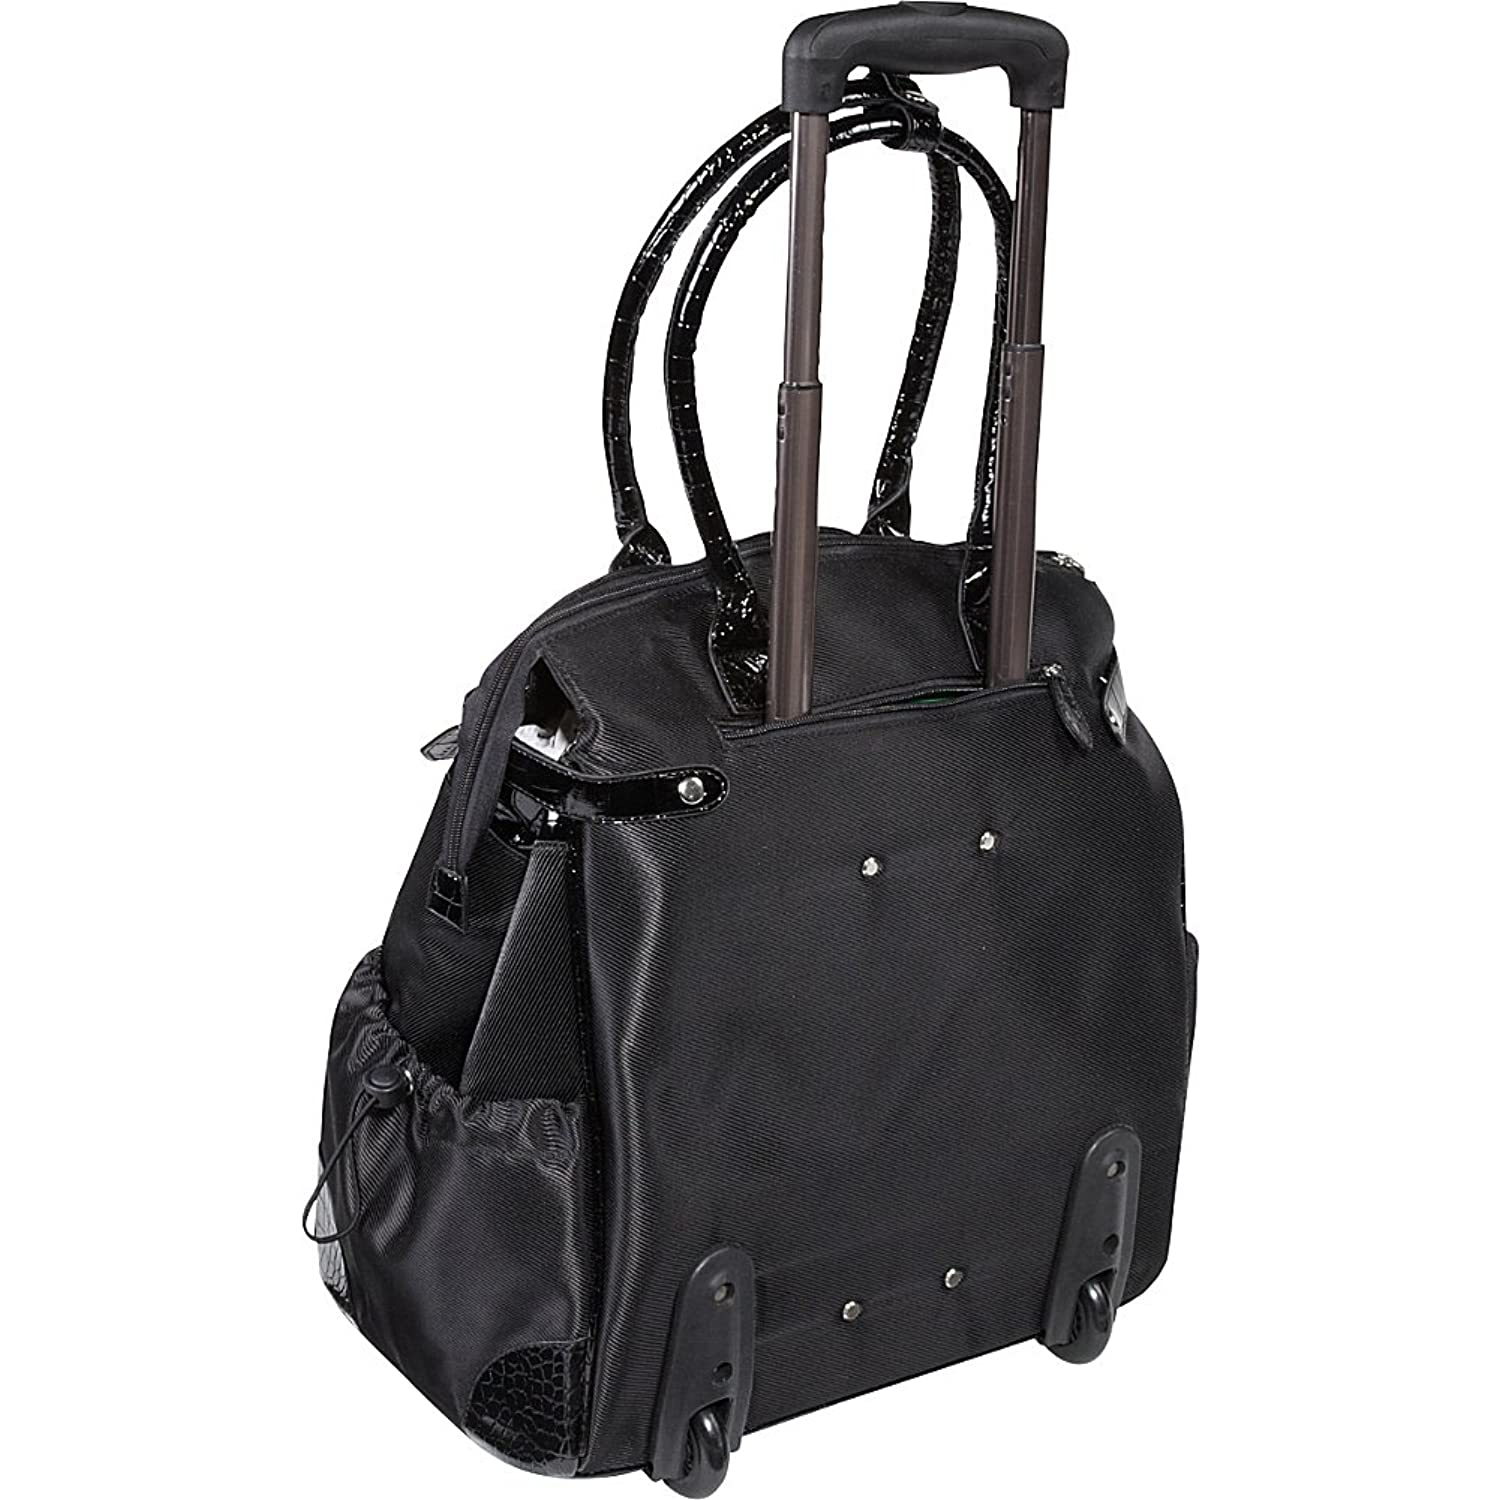 Canvas tote bags on wheels - Amazon Com Amerileather Deluxe Skylar Women S Large Rolling Laptop Tote Black Briefcases